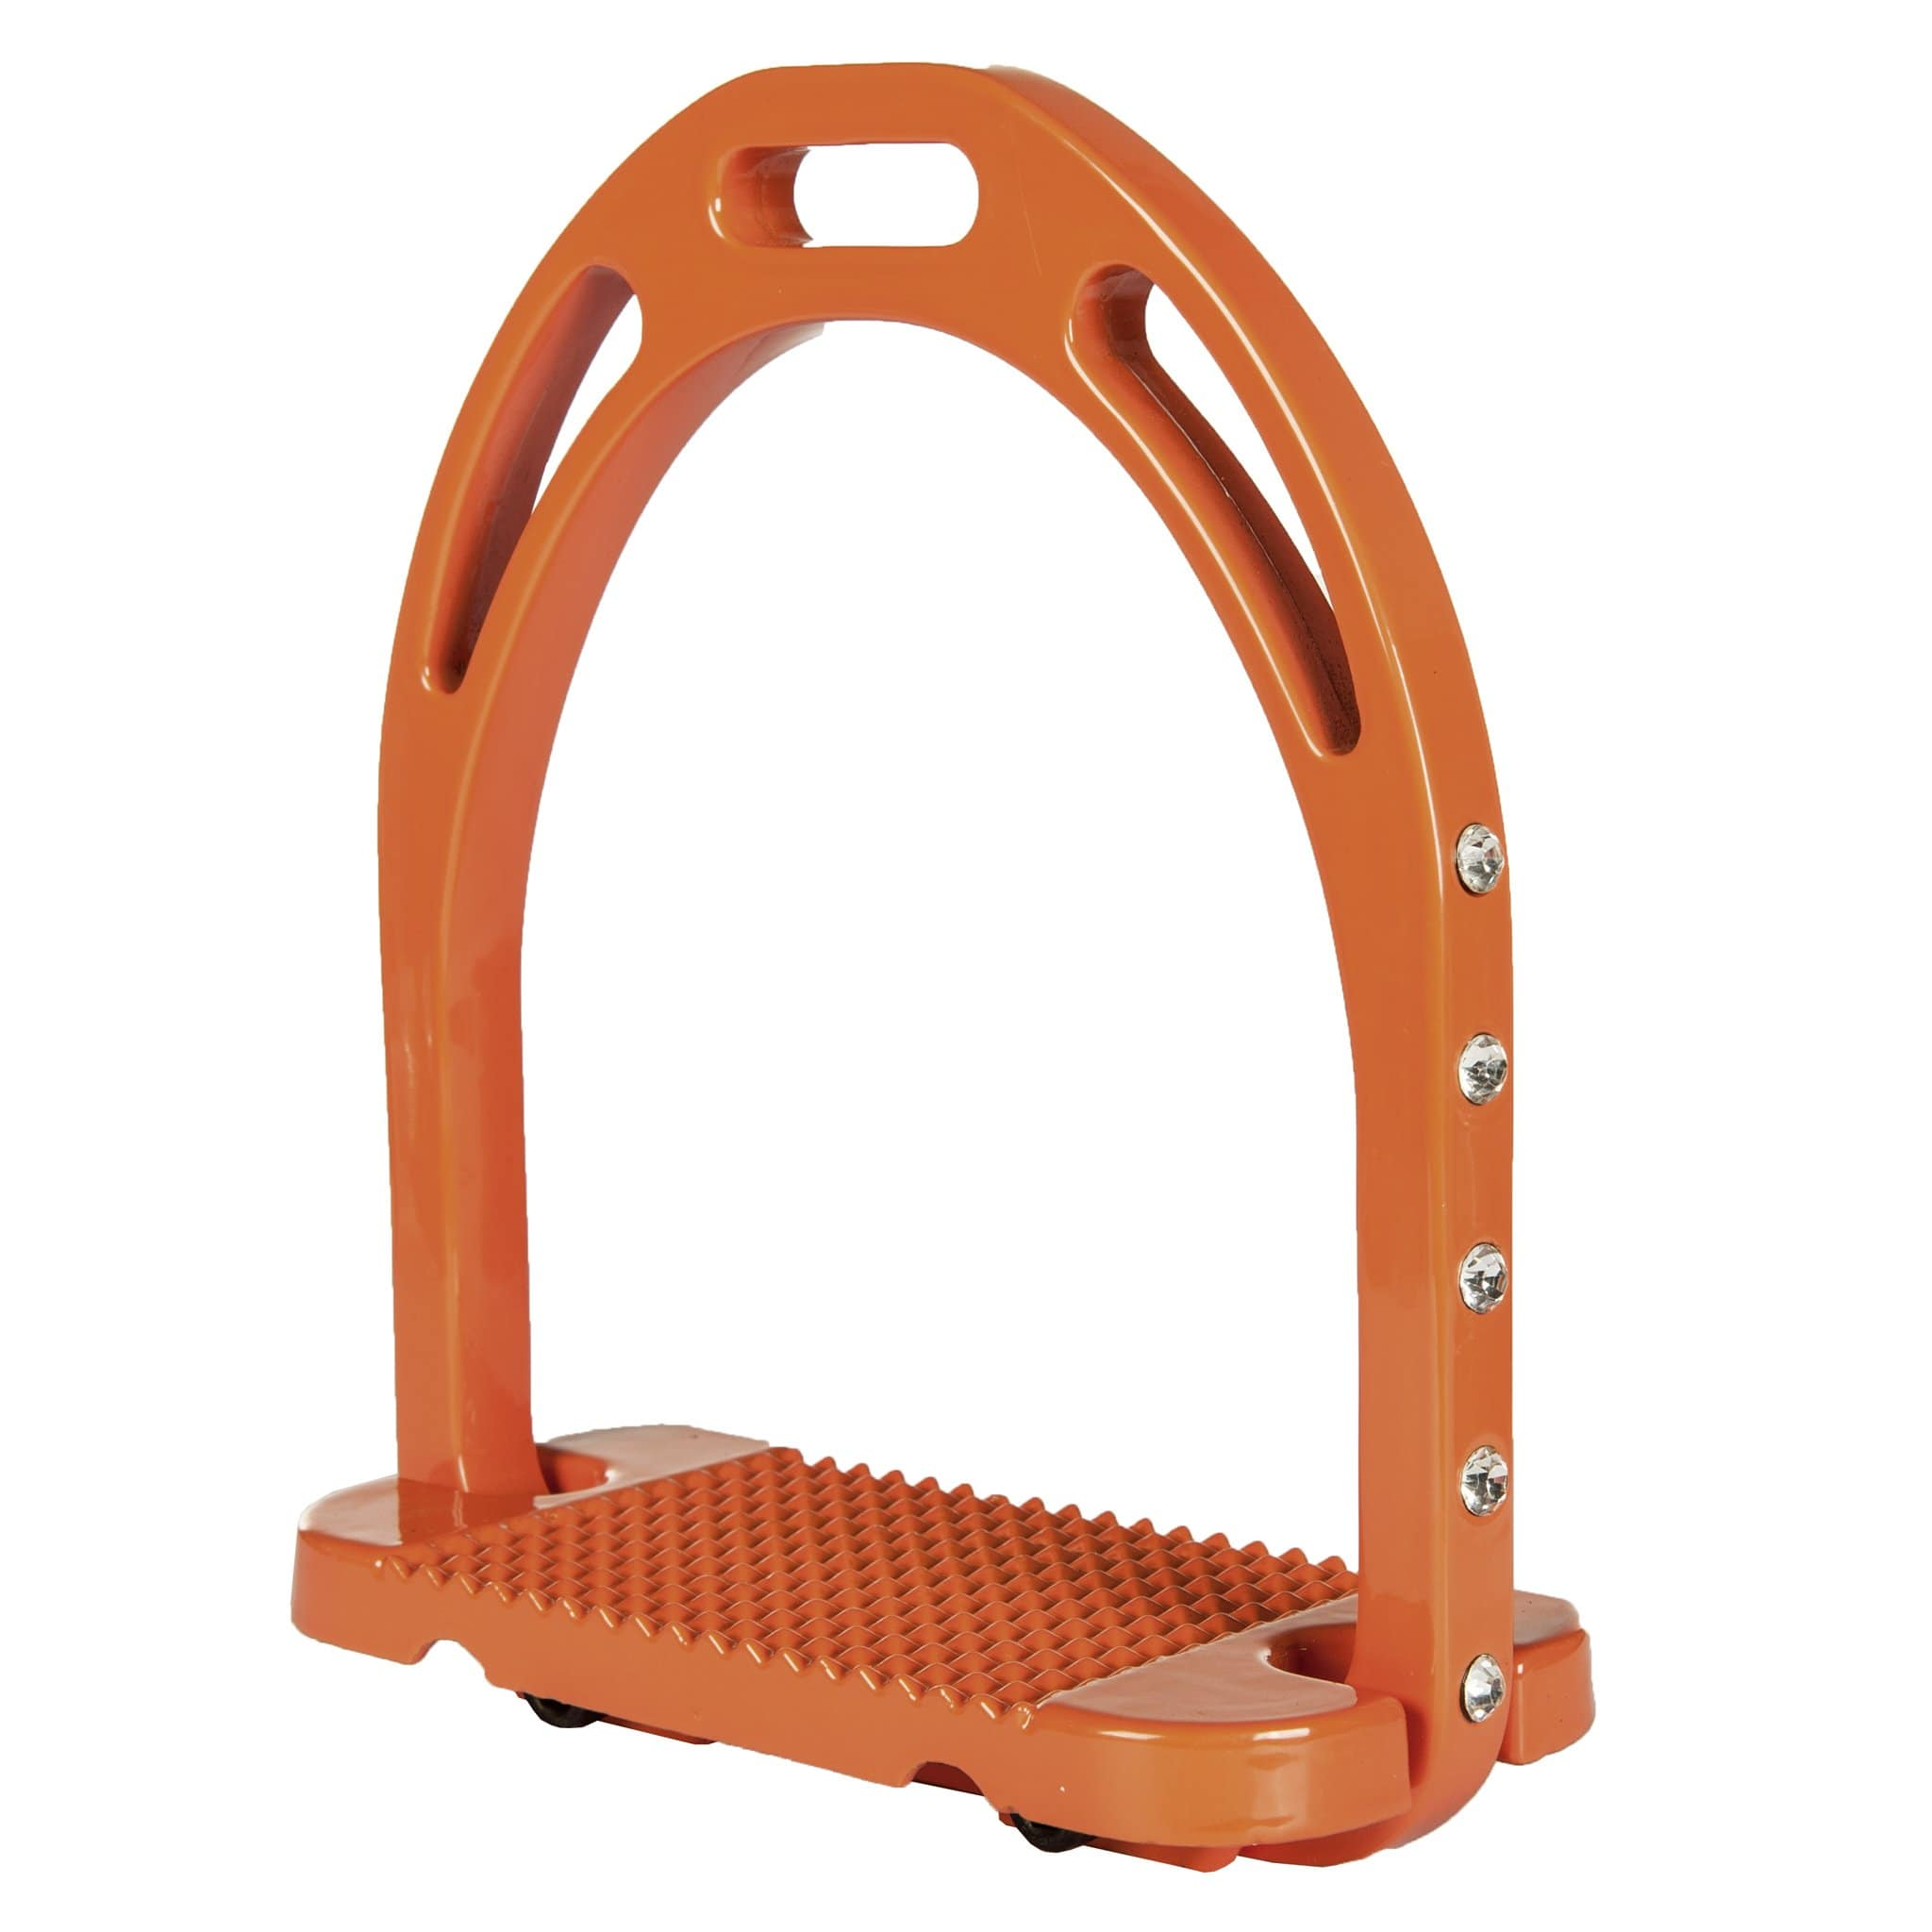 HKM Glitter Stirrups in Orange 7673